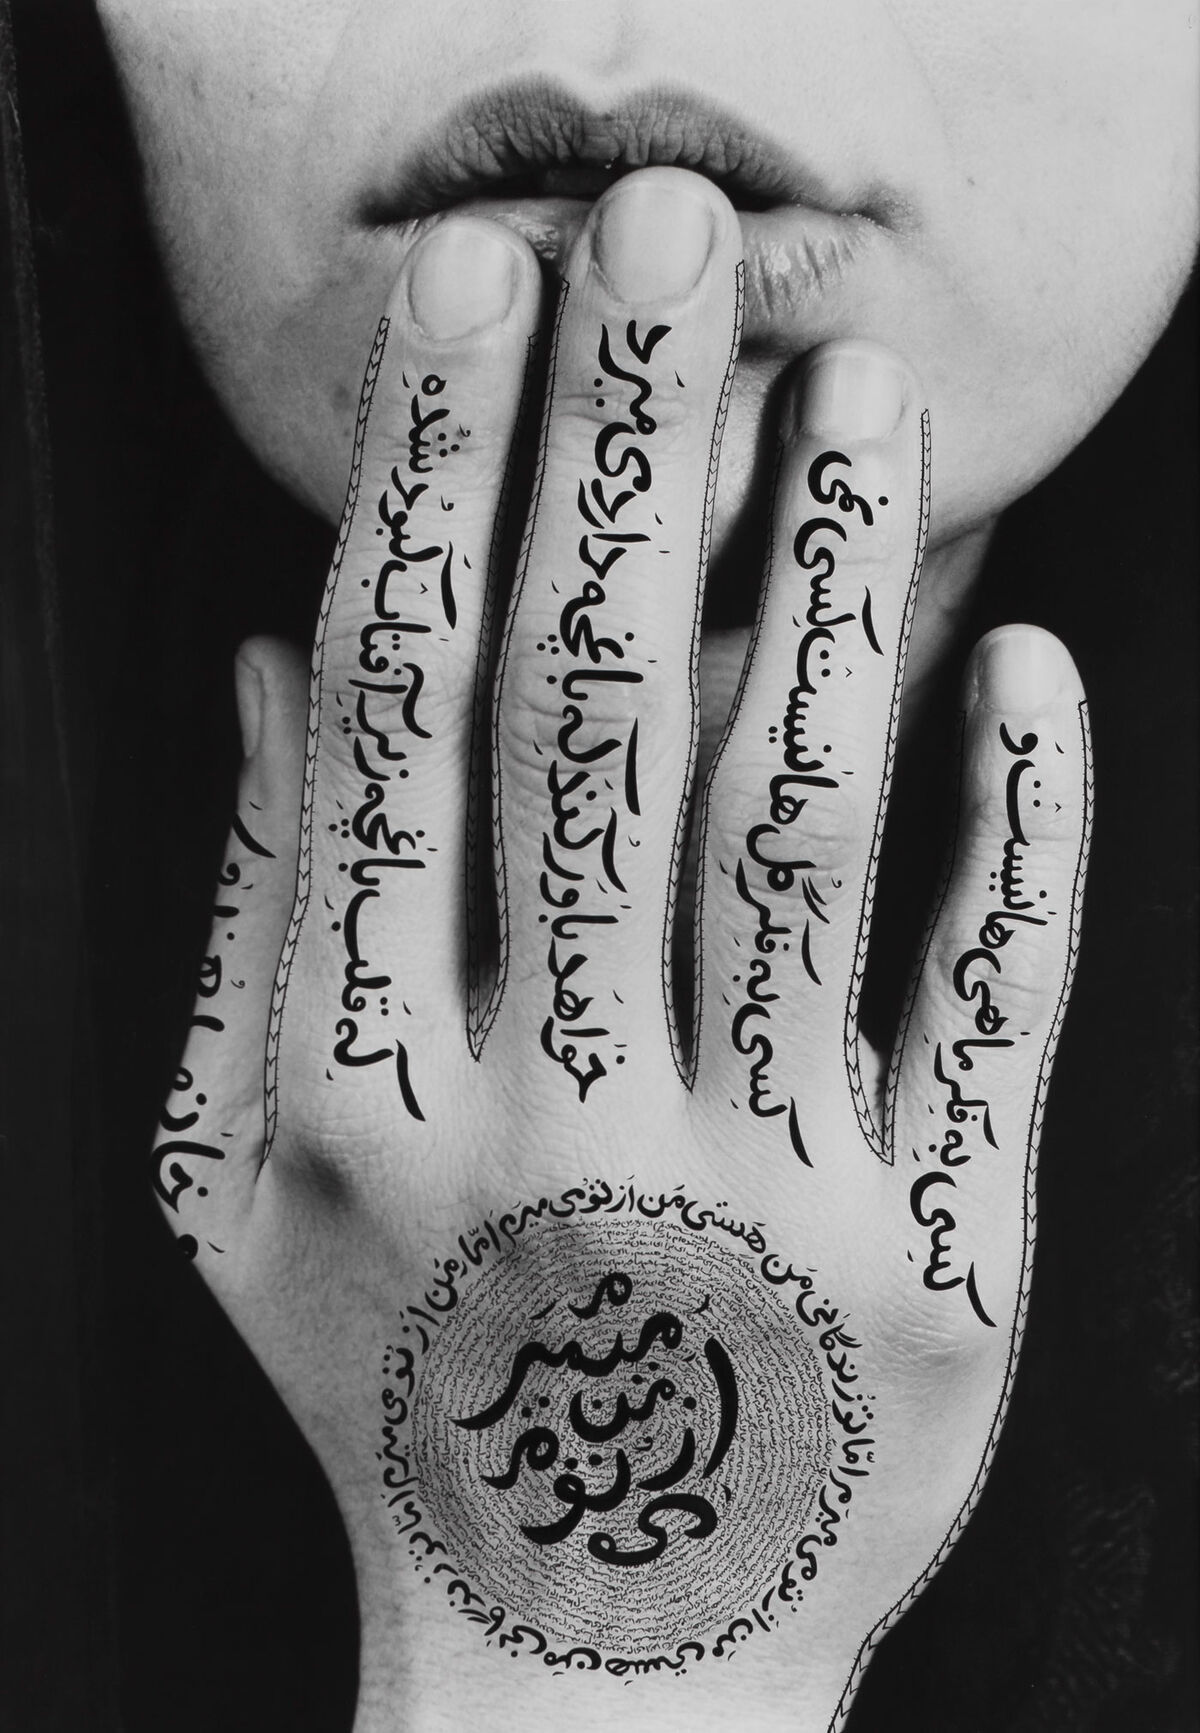 Shirin Neshat, Untitled, 1996. © Shirin Neshat. Photo by Larry Barns. Courtesy of the artist and Gladstone Gallery, New York and Brussels.